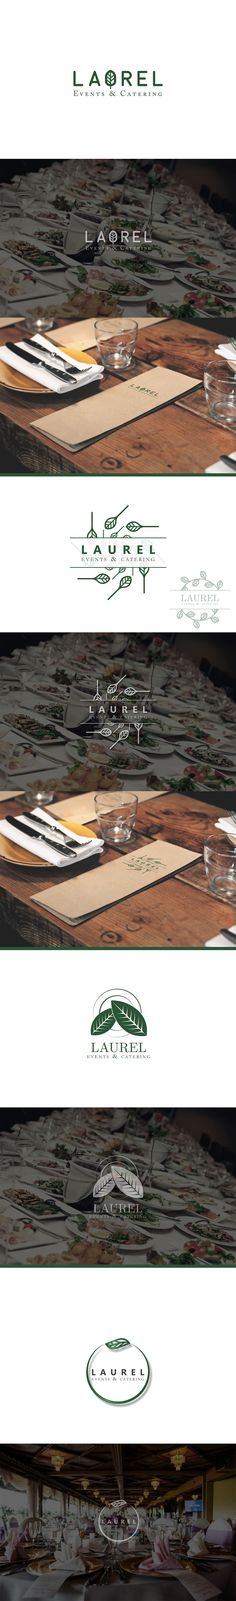 """Check out my @Behance project: """"Laurel Events & Catering - Branding concepts"""" https://www.behance.net/gallery/52941381/Laurel-Events-Catering-Branding-concepts"""